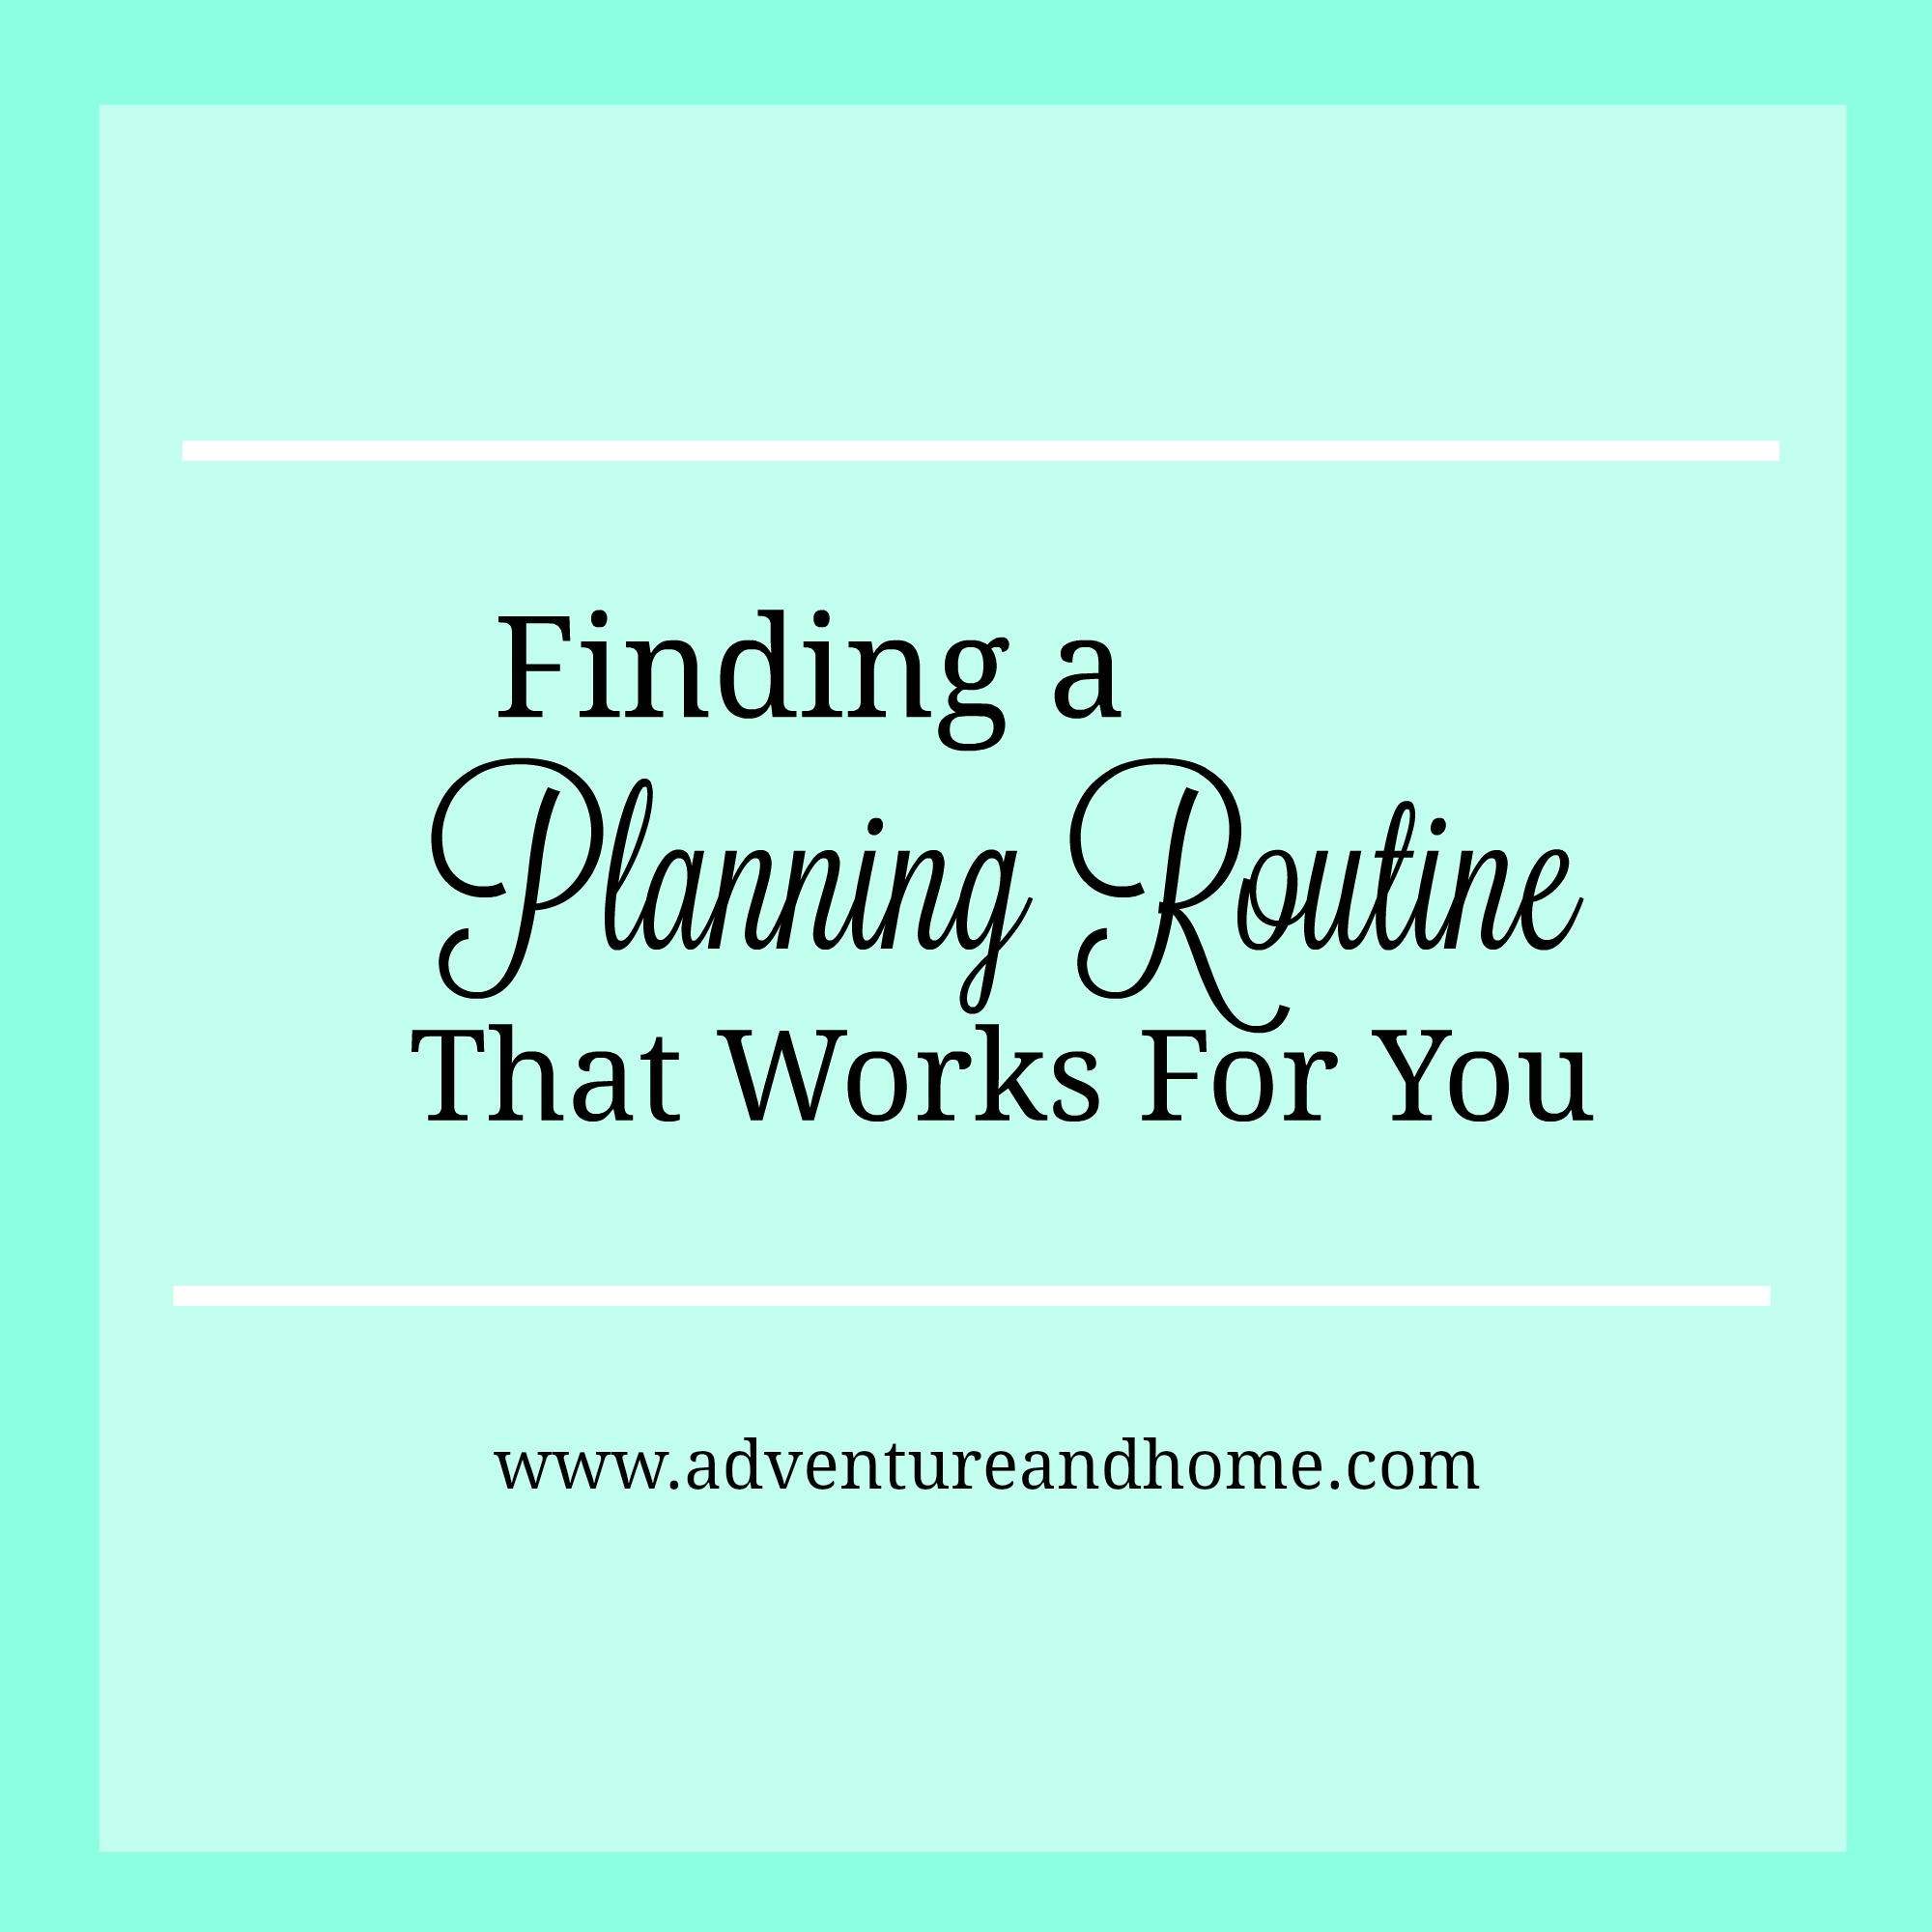 Finding a Planning Routine That Works For You